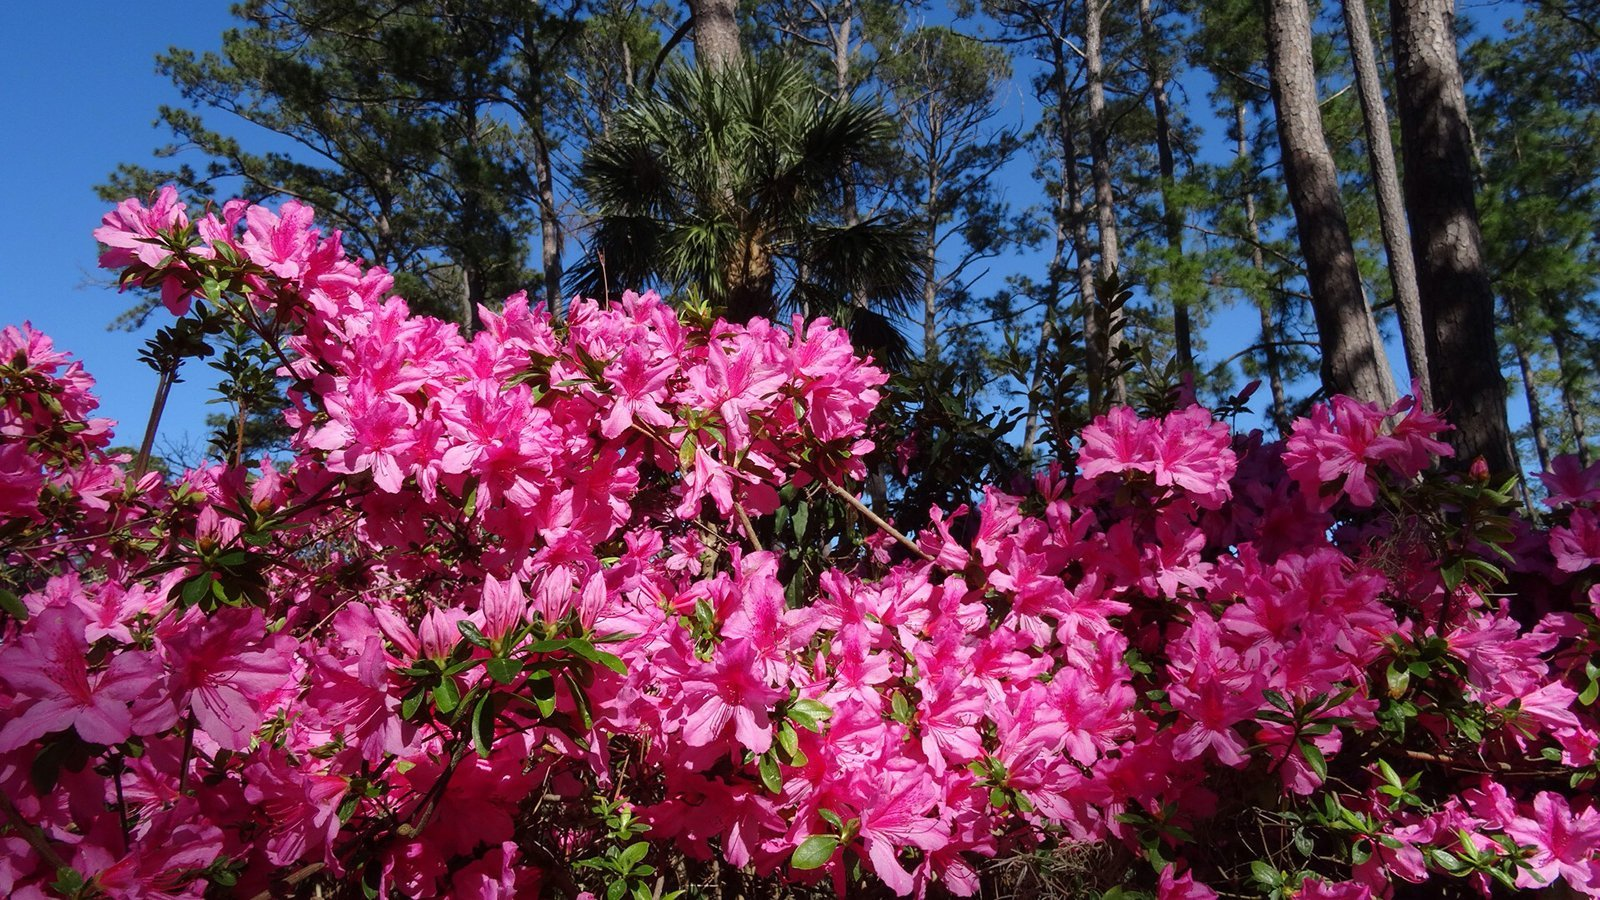 Azaleas blooming at The Sea Pines Resort